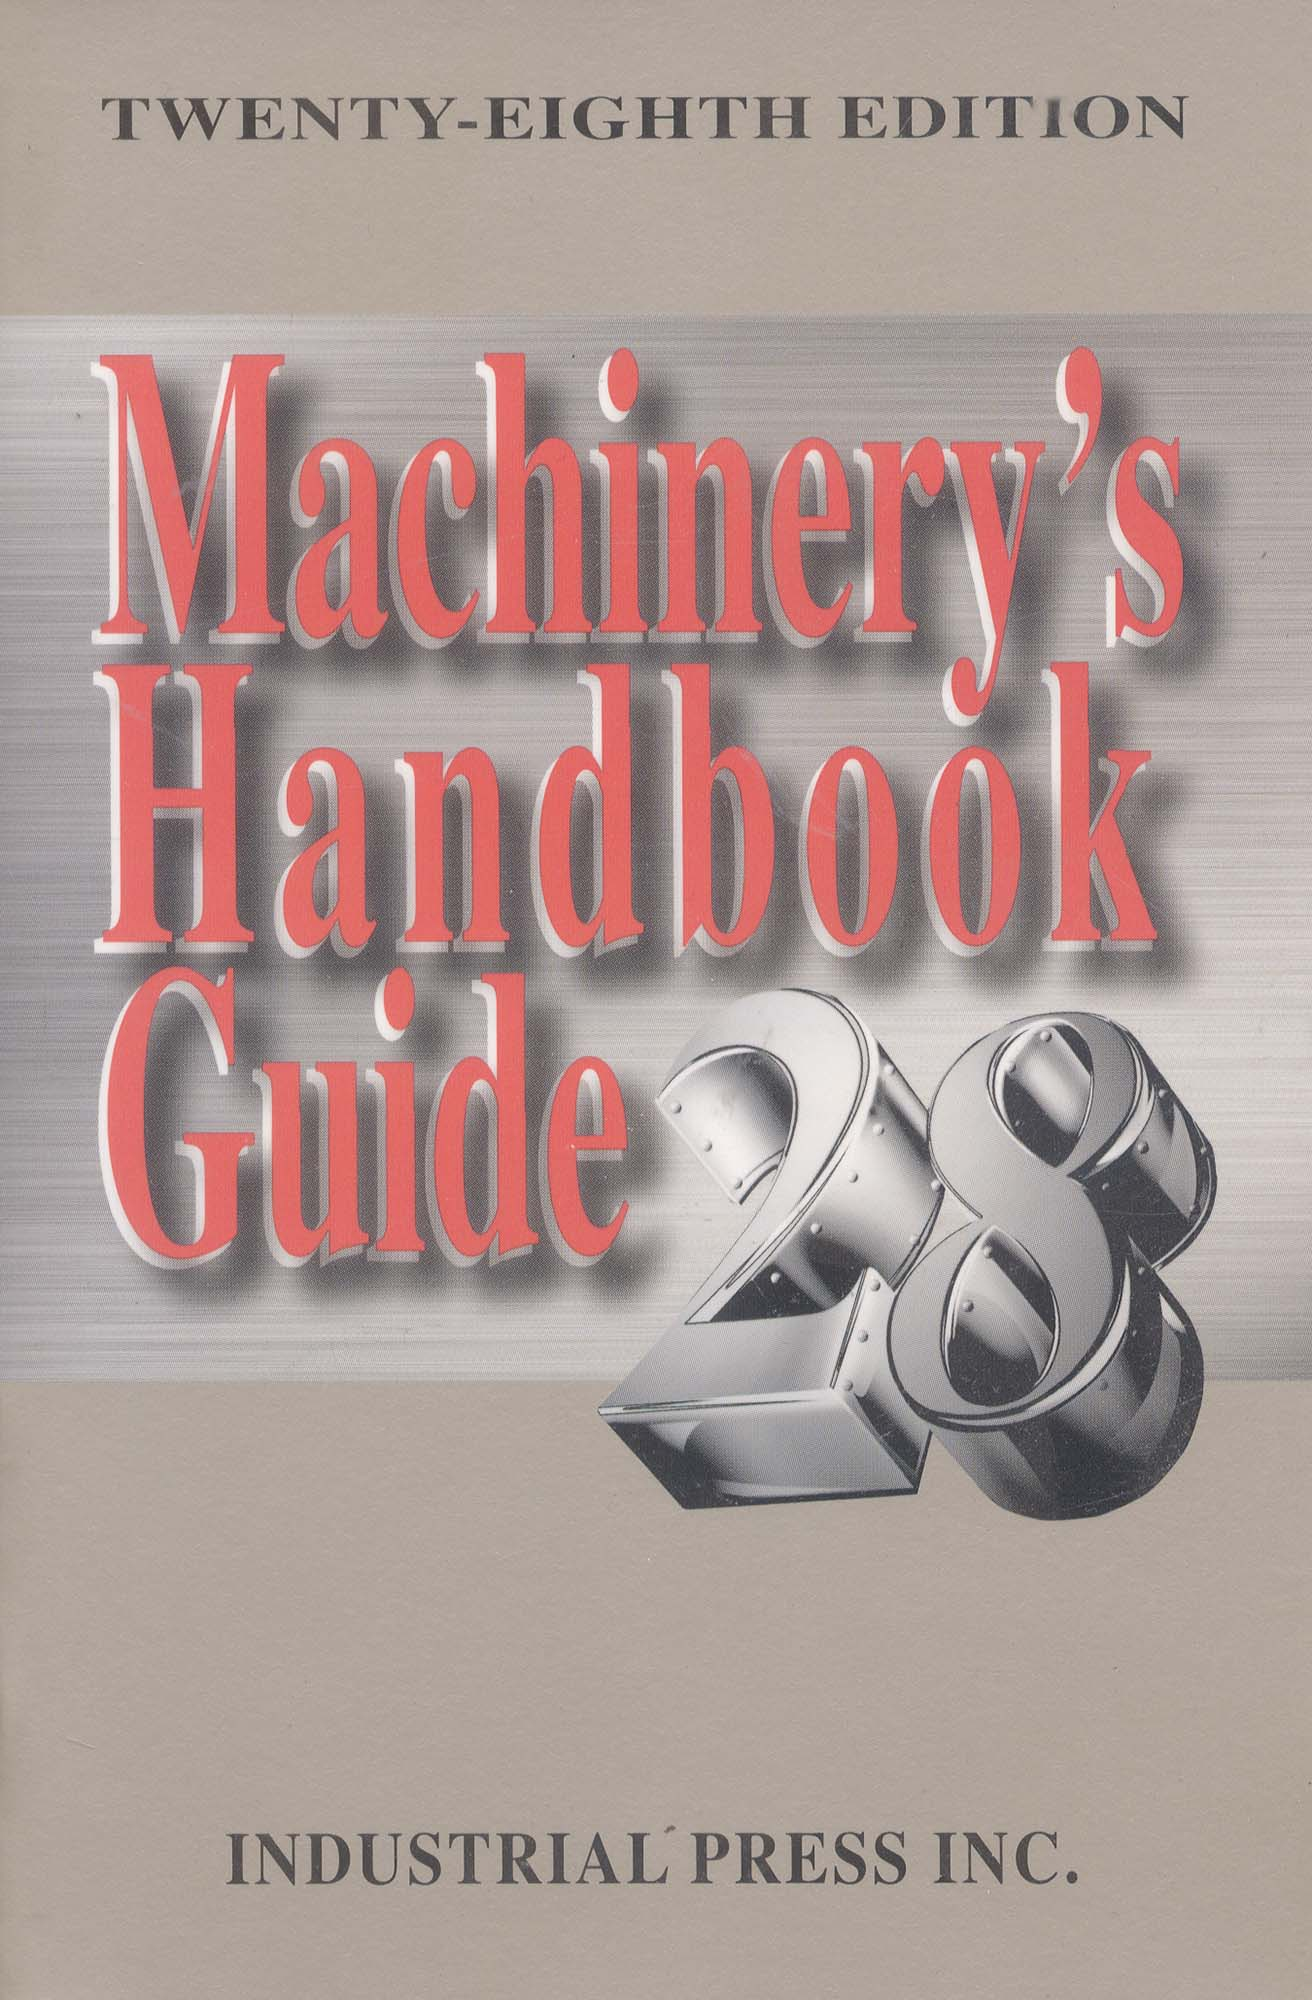 Book-Machinerys Handbook Guide 30th Edition